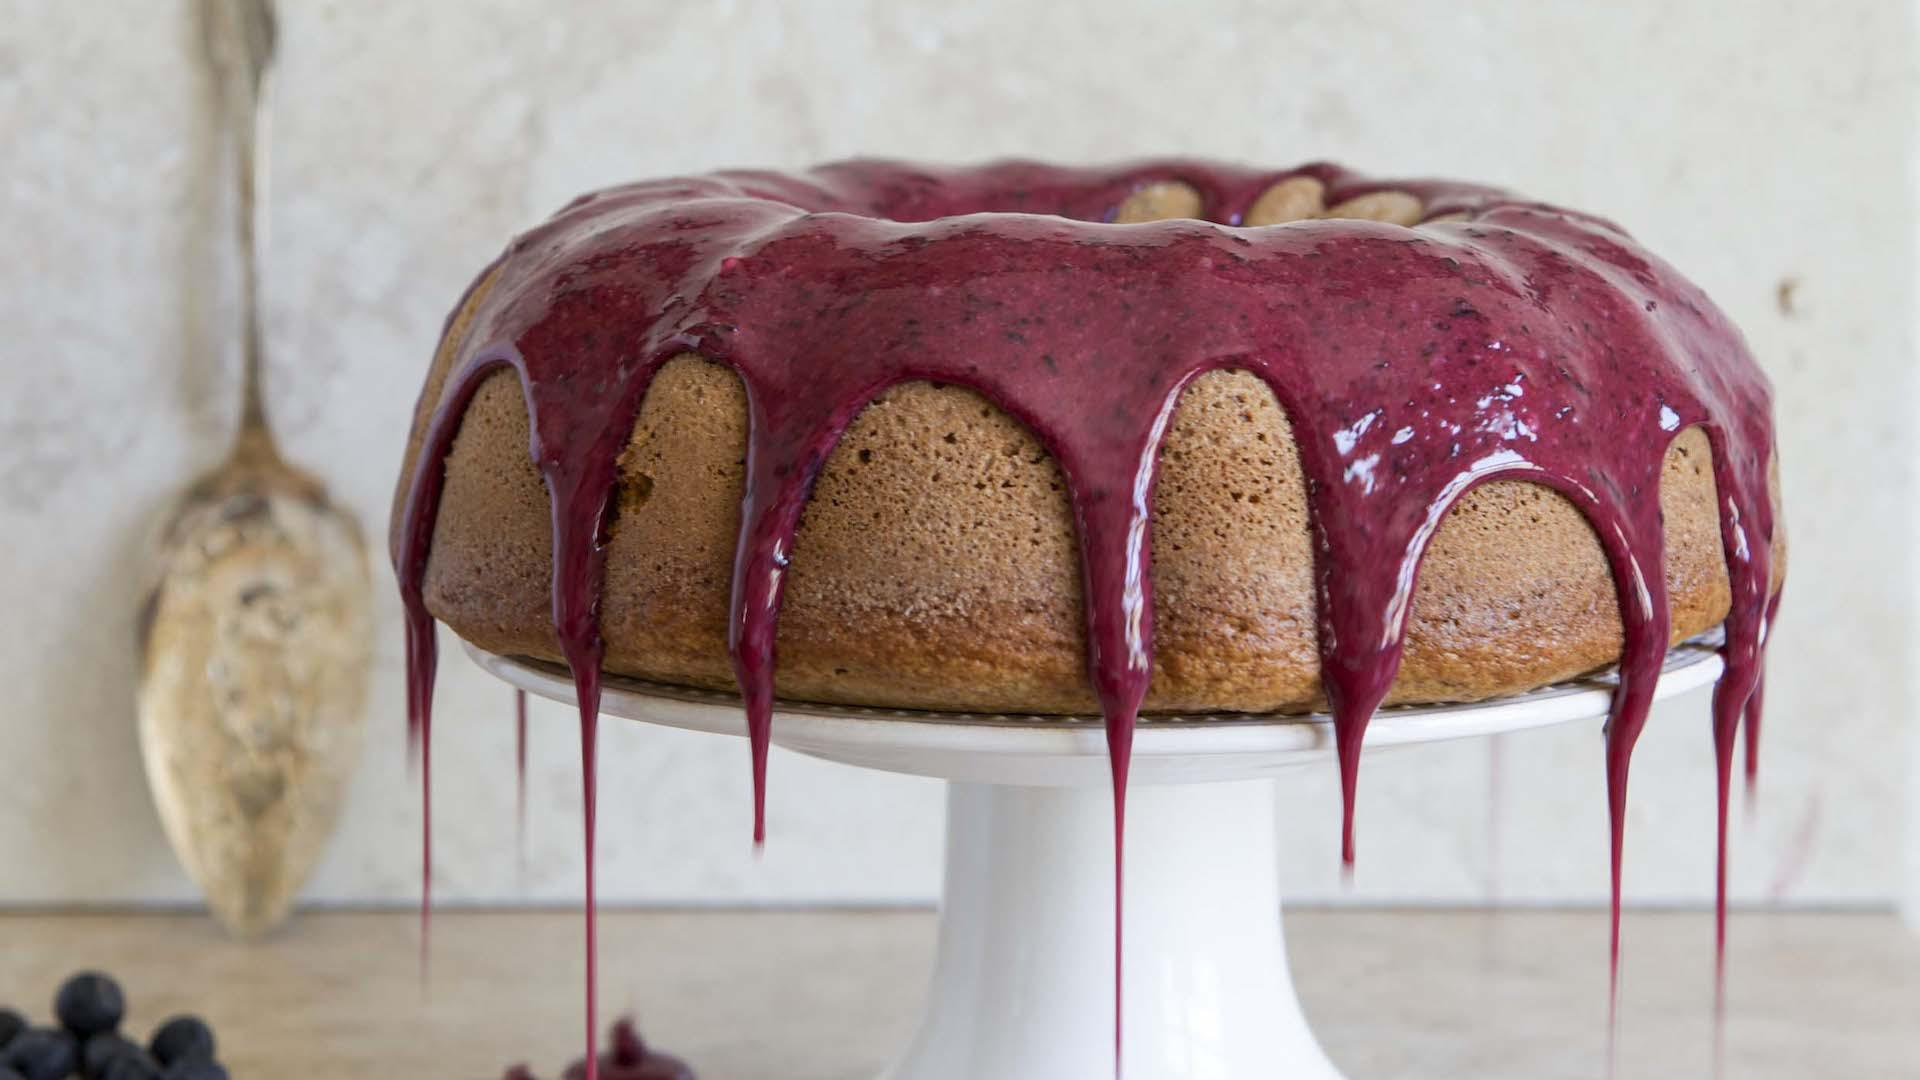 Seriously delicious whole-wheat blueberry Bundt cake is the perfect (healthy) dessert